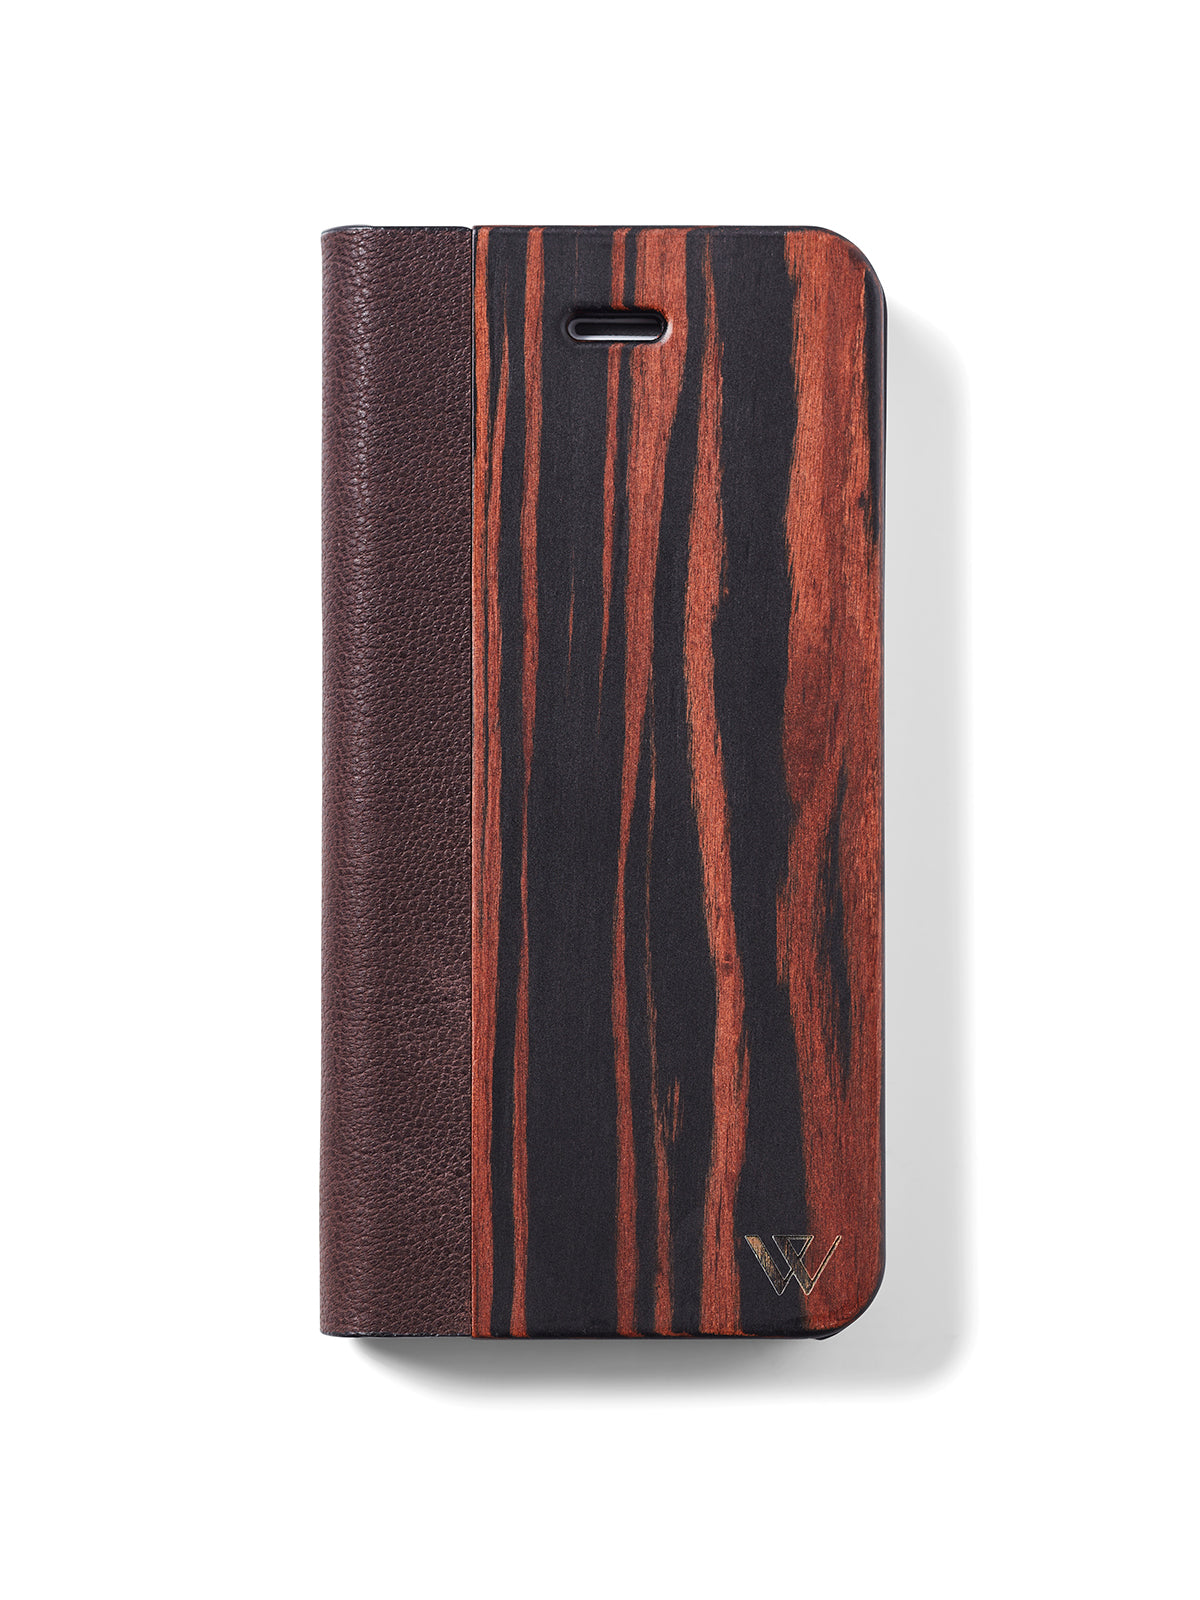 Houten flip case iPhone 6/6s/7/8 - Woodstylz